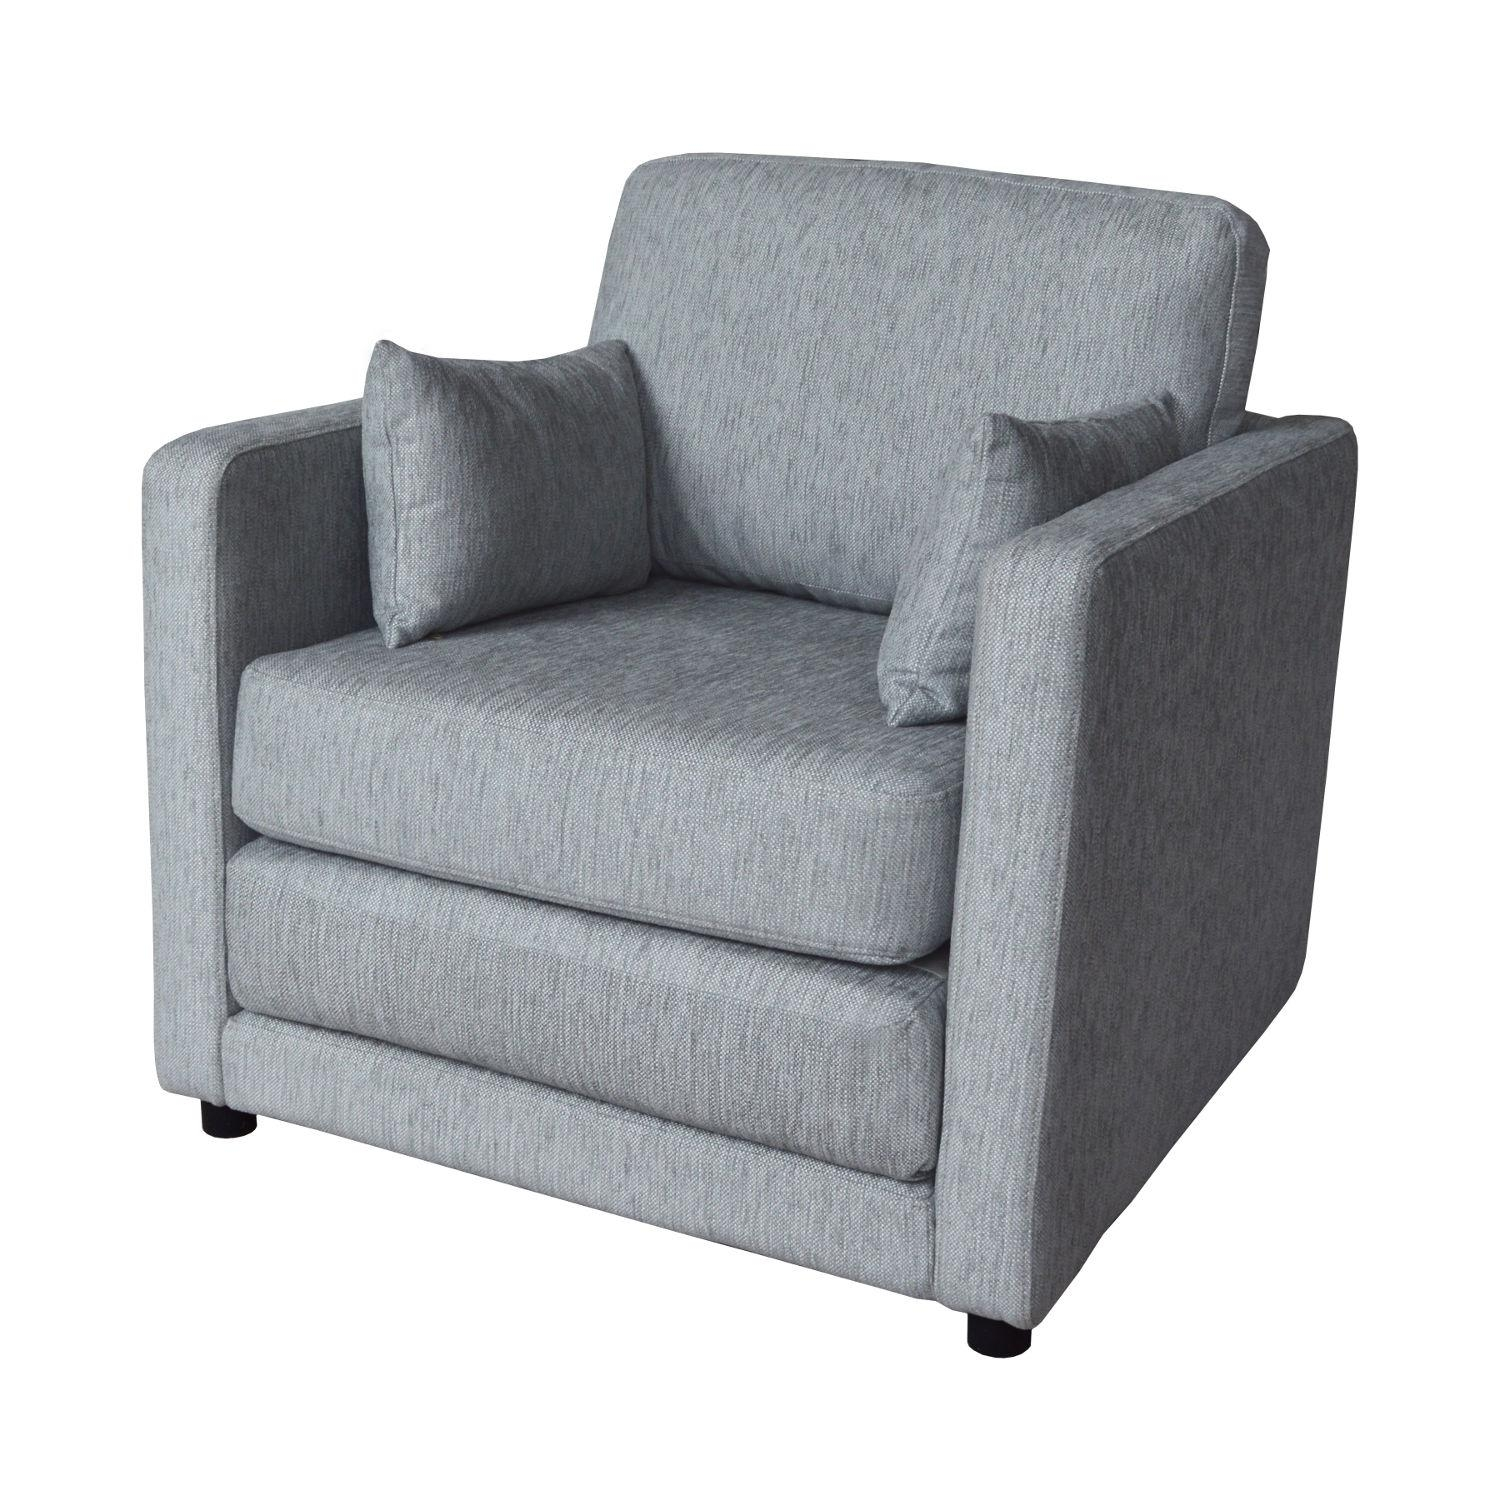 Sofas Center : Best Chair Sofa Beds Convertible Bedroom For Adults Within Sofa Beds Chairs (View 4 of 20)